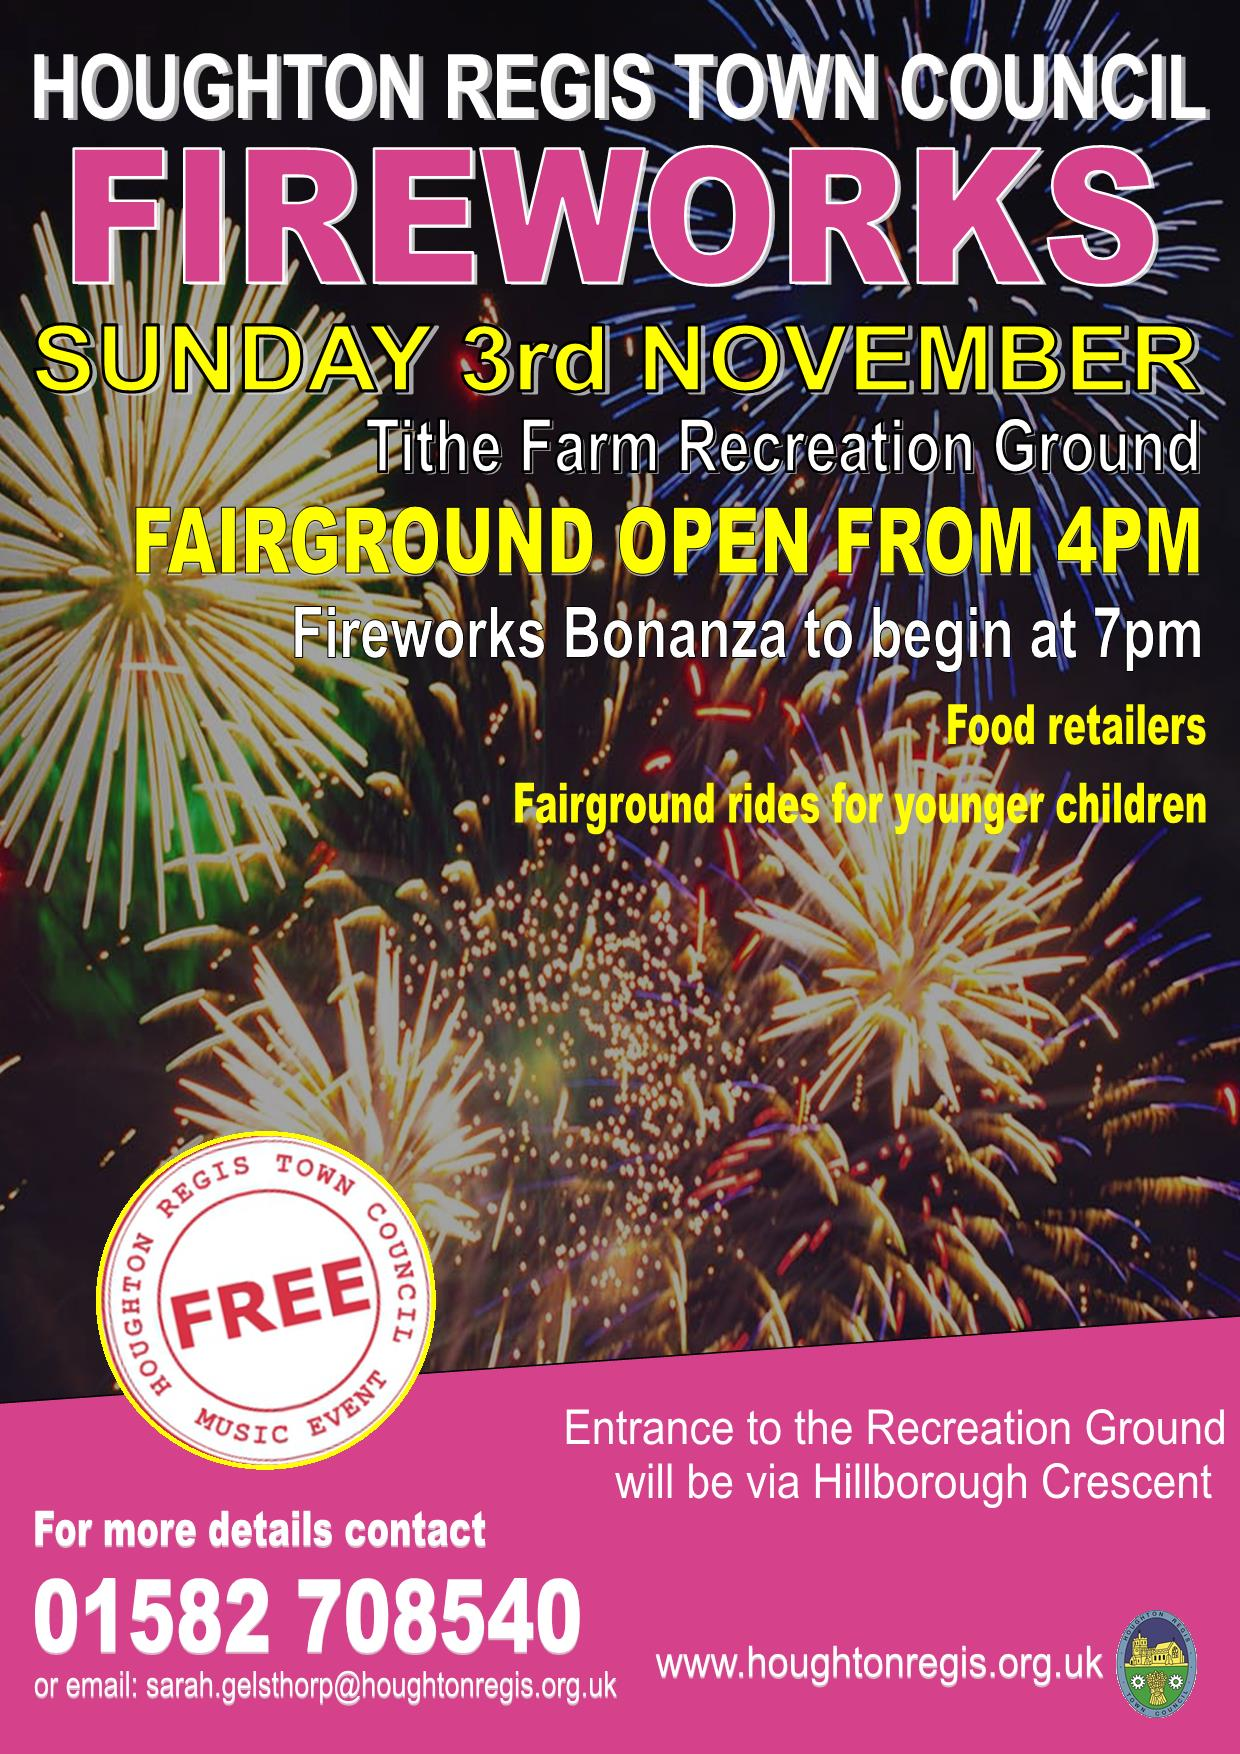 Fireworks Display | Houghton Regis Town Council